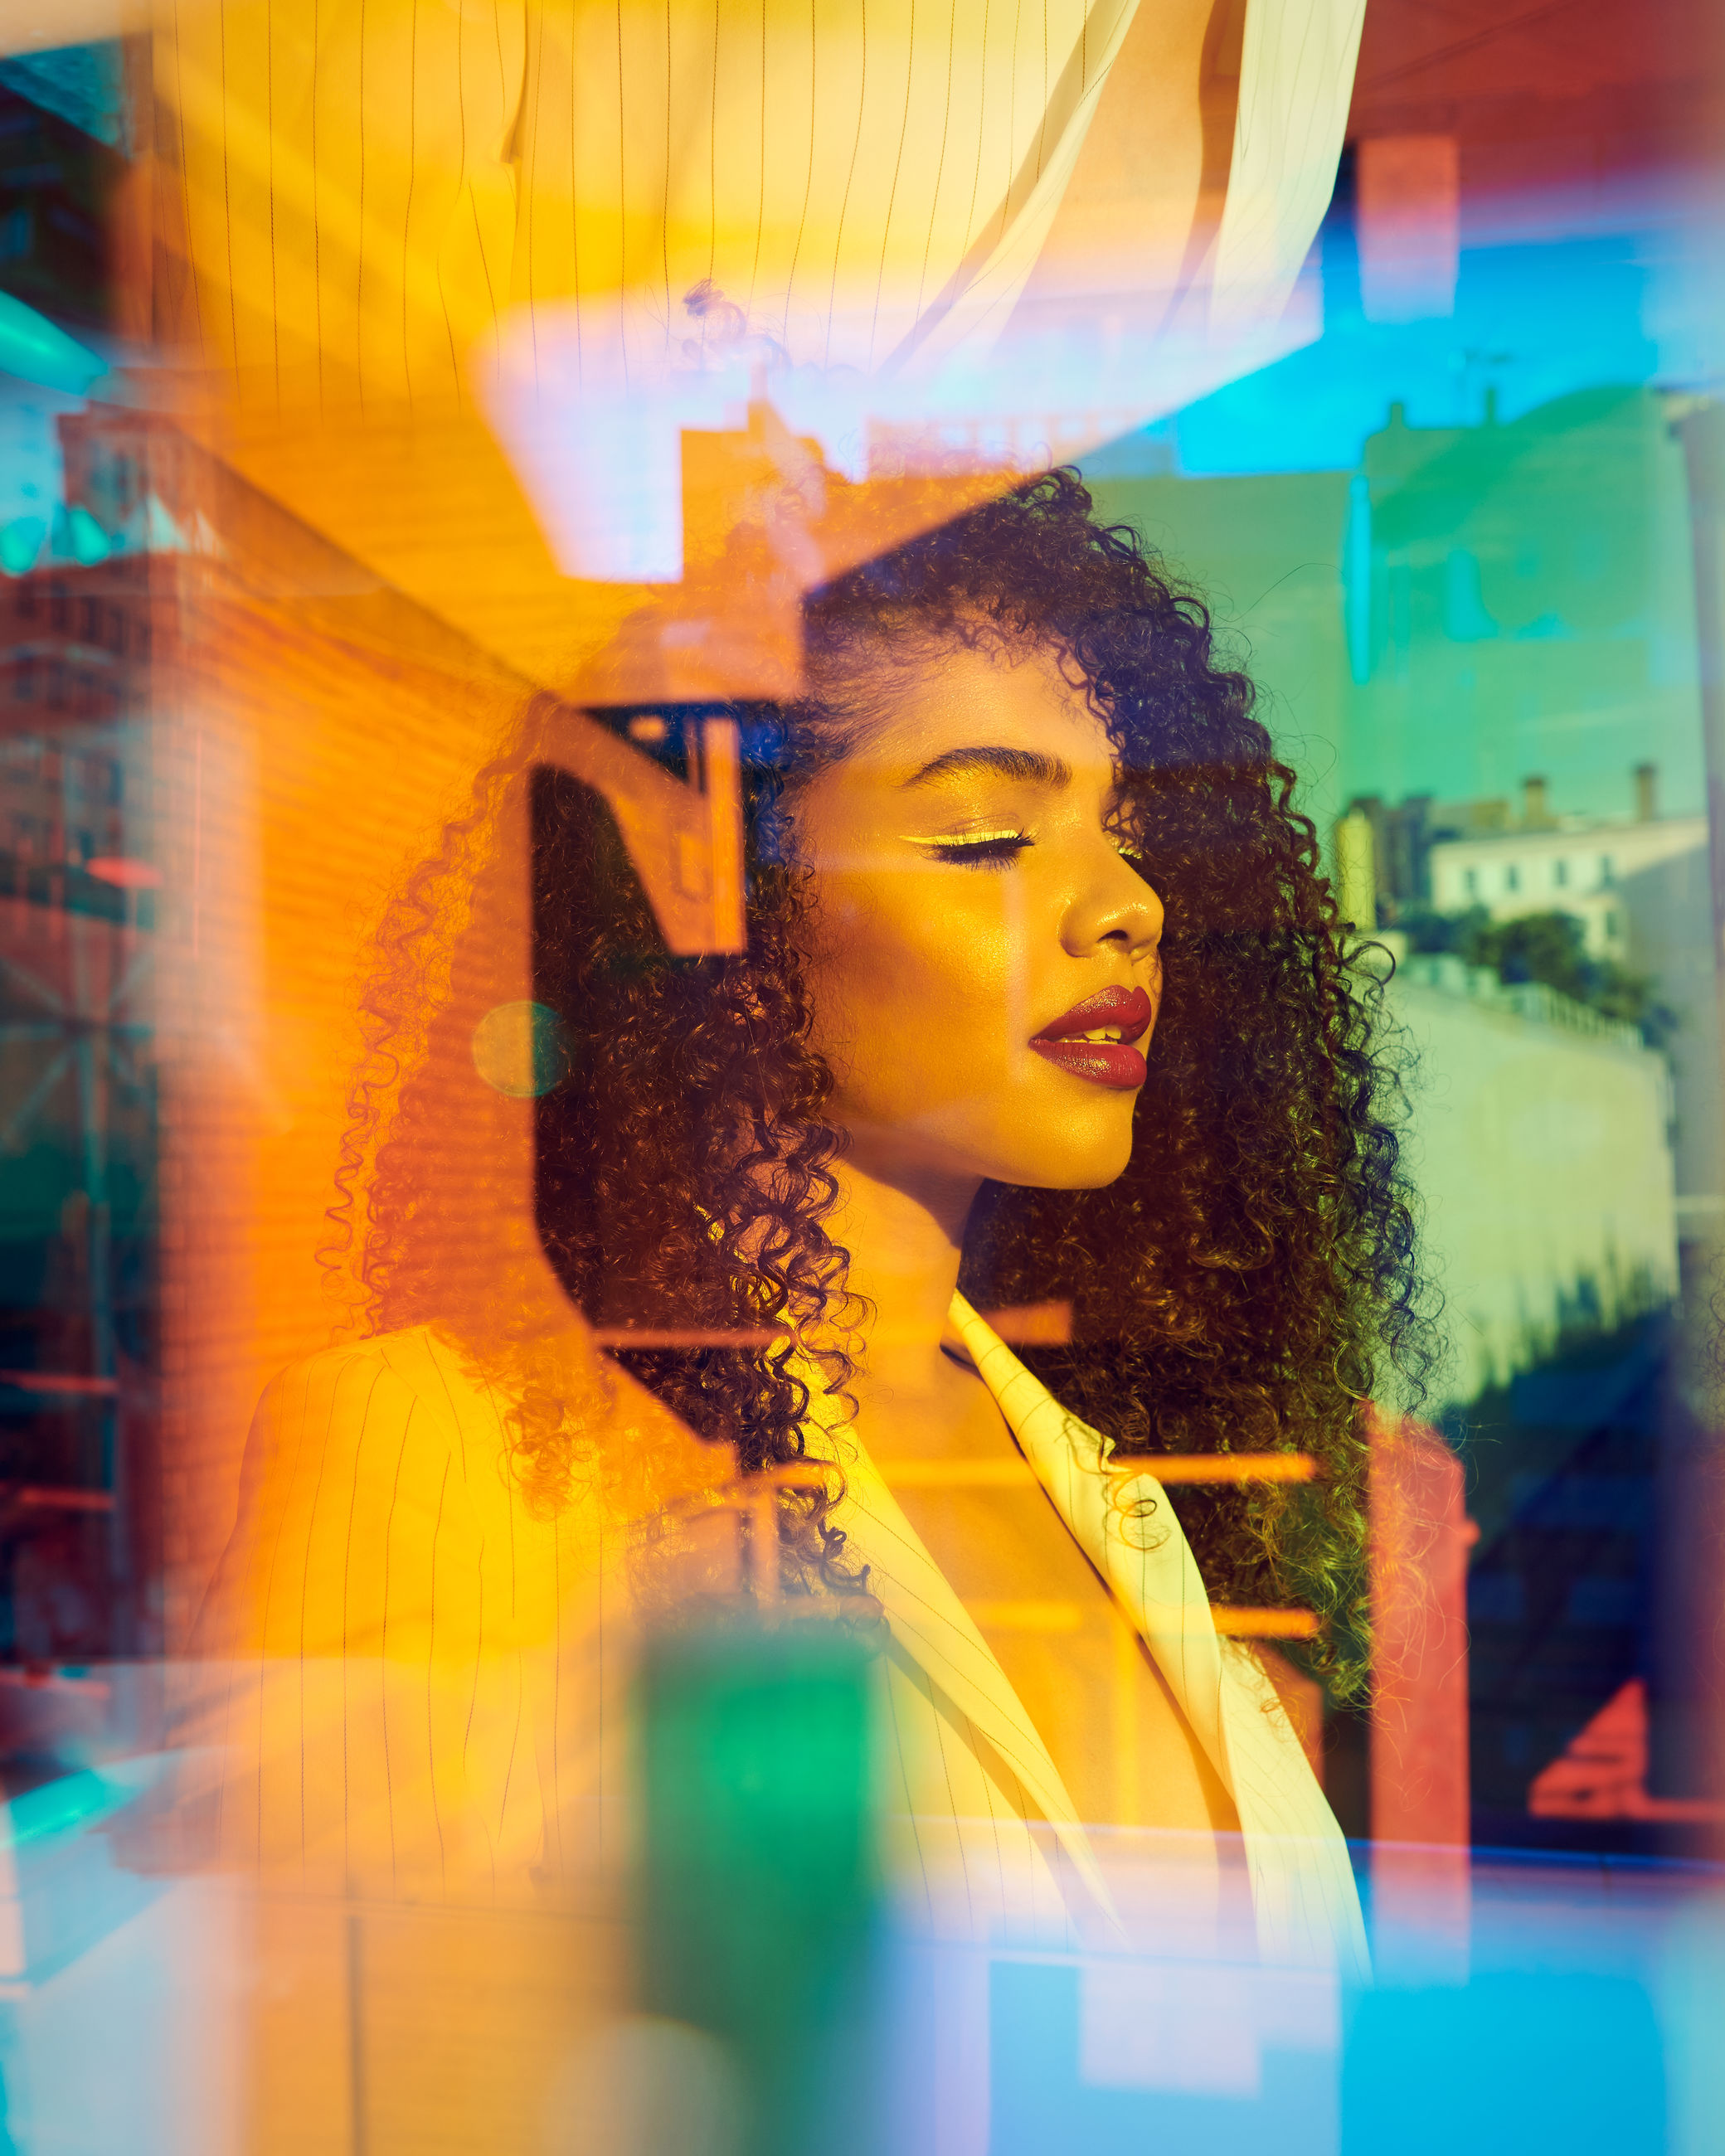 glass - material, young adult, window, one person, looking, store, real people, transparent, portrait, indoors, retail, looking away, human representation, store window, selective focus, lifestyles, curly hair, hairstyle, reflection, digital composite, contemplation, retail display, beautiful woman, consumerism